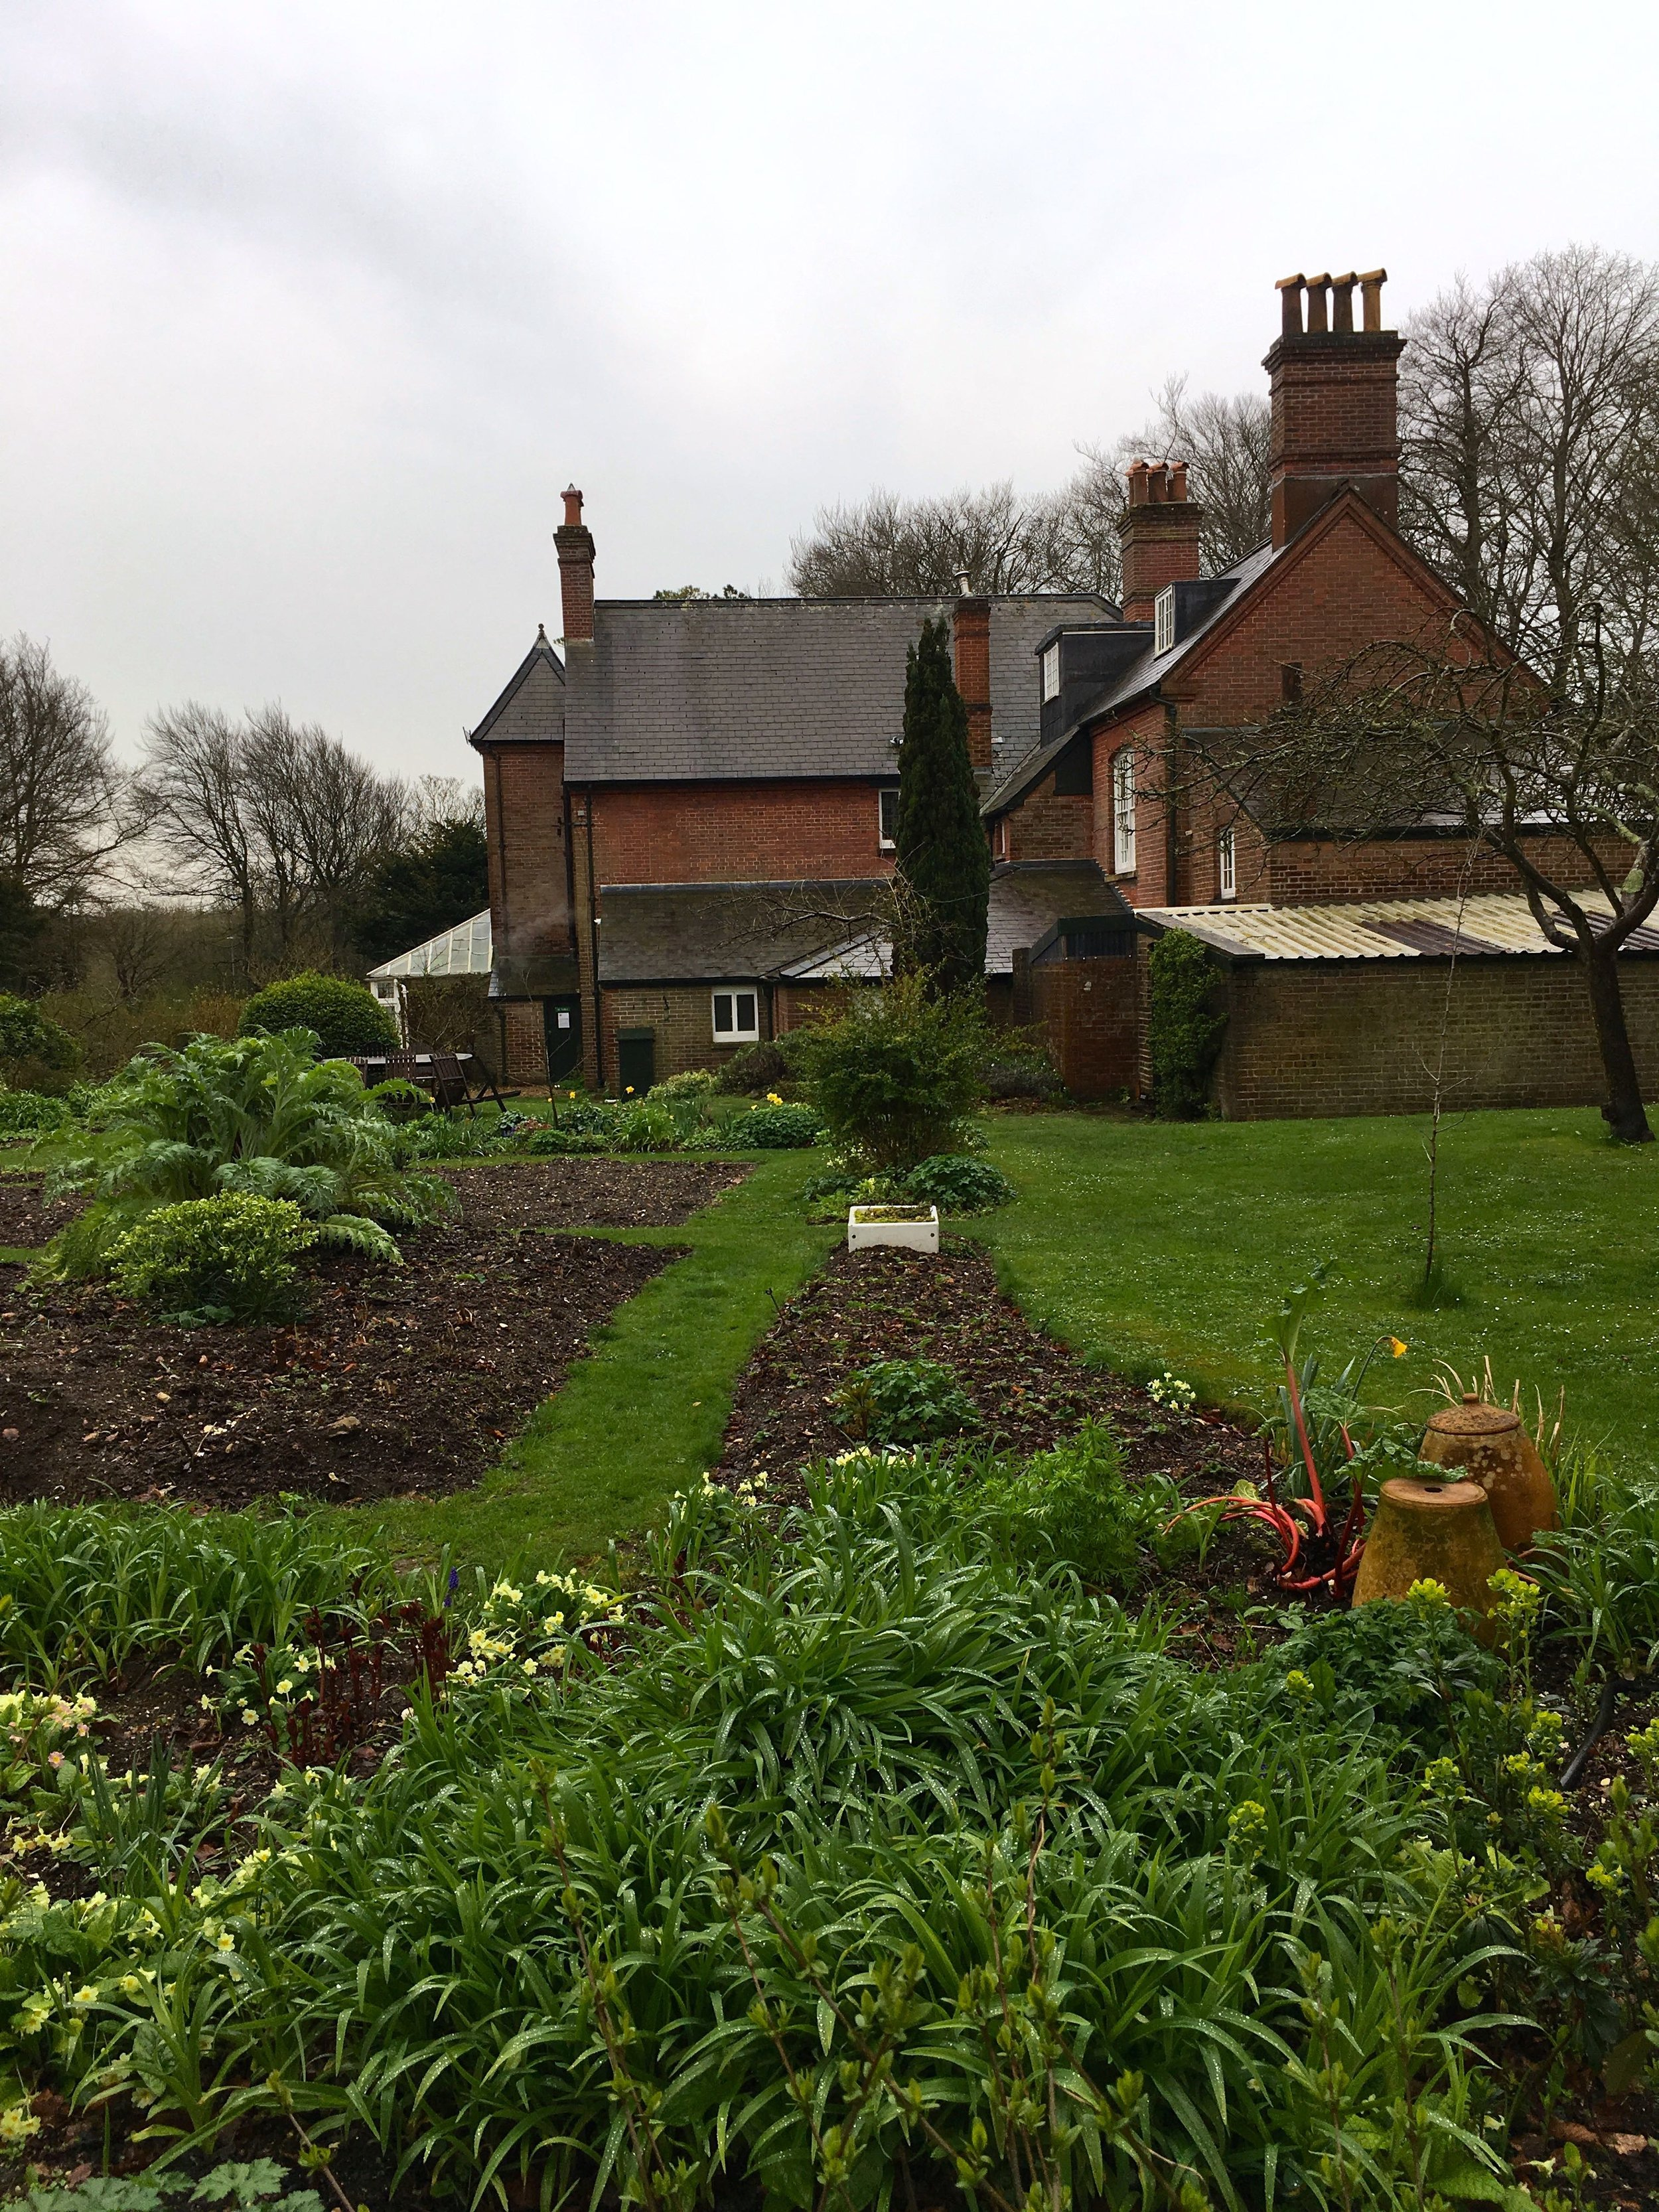 the neat beds of the vegetable garden at the National Trust property in Dorchester